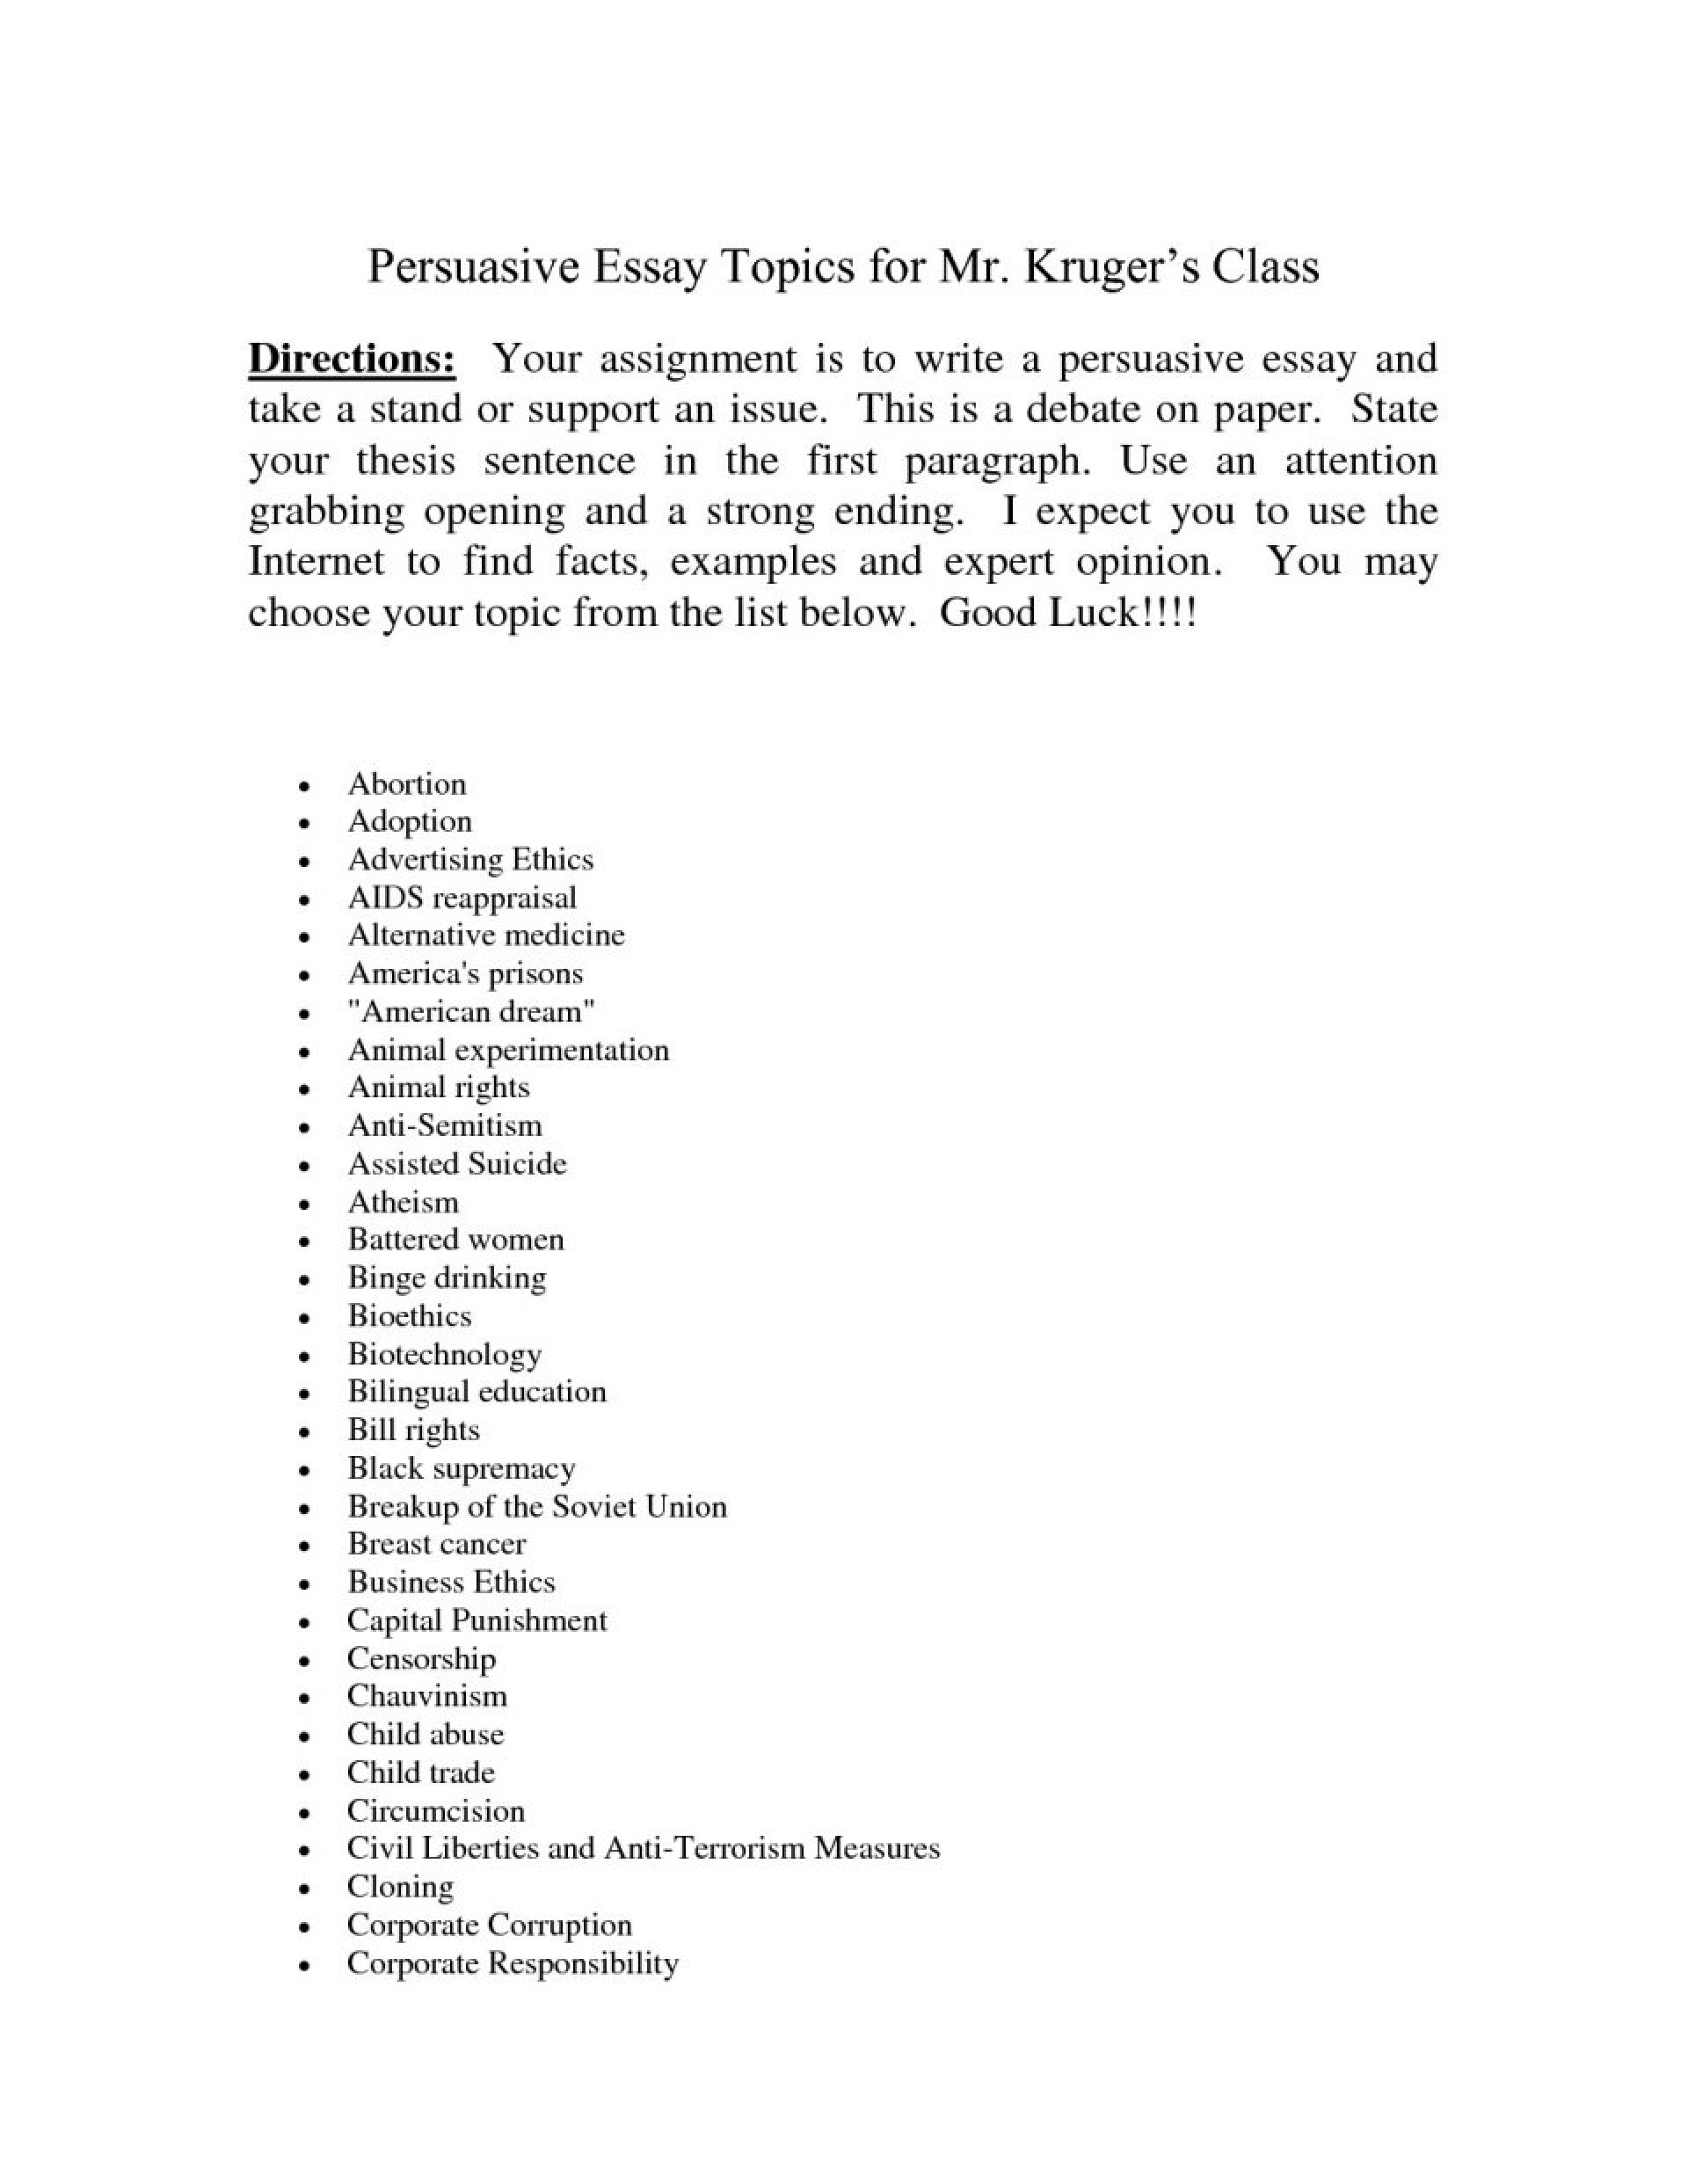 022 Interesting Topic For Research Paper Essay Barca Fontanacountryinn Within Good Persuasive Narrative Topics To Write Abo Easy About Personal Descriptive Informative Synthesis Breathtaking Hot Medical Papers In Education The Philippines Sample 1920